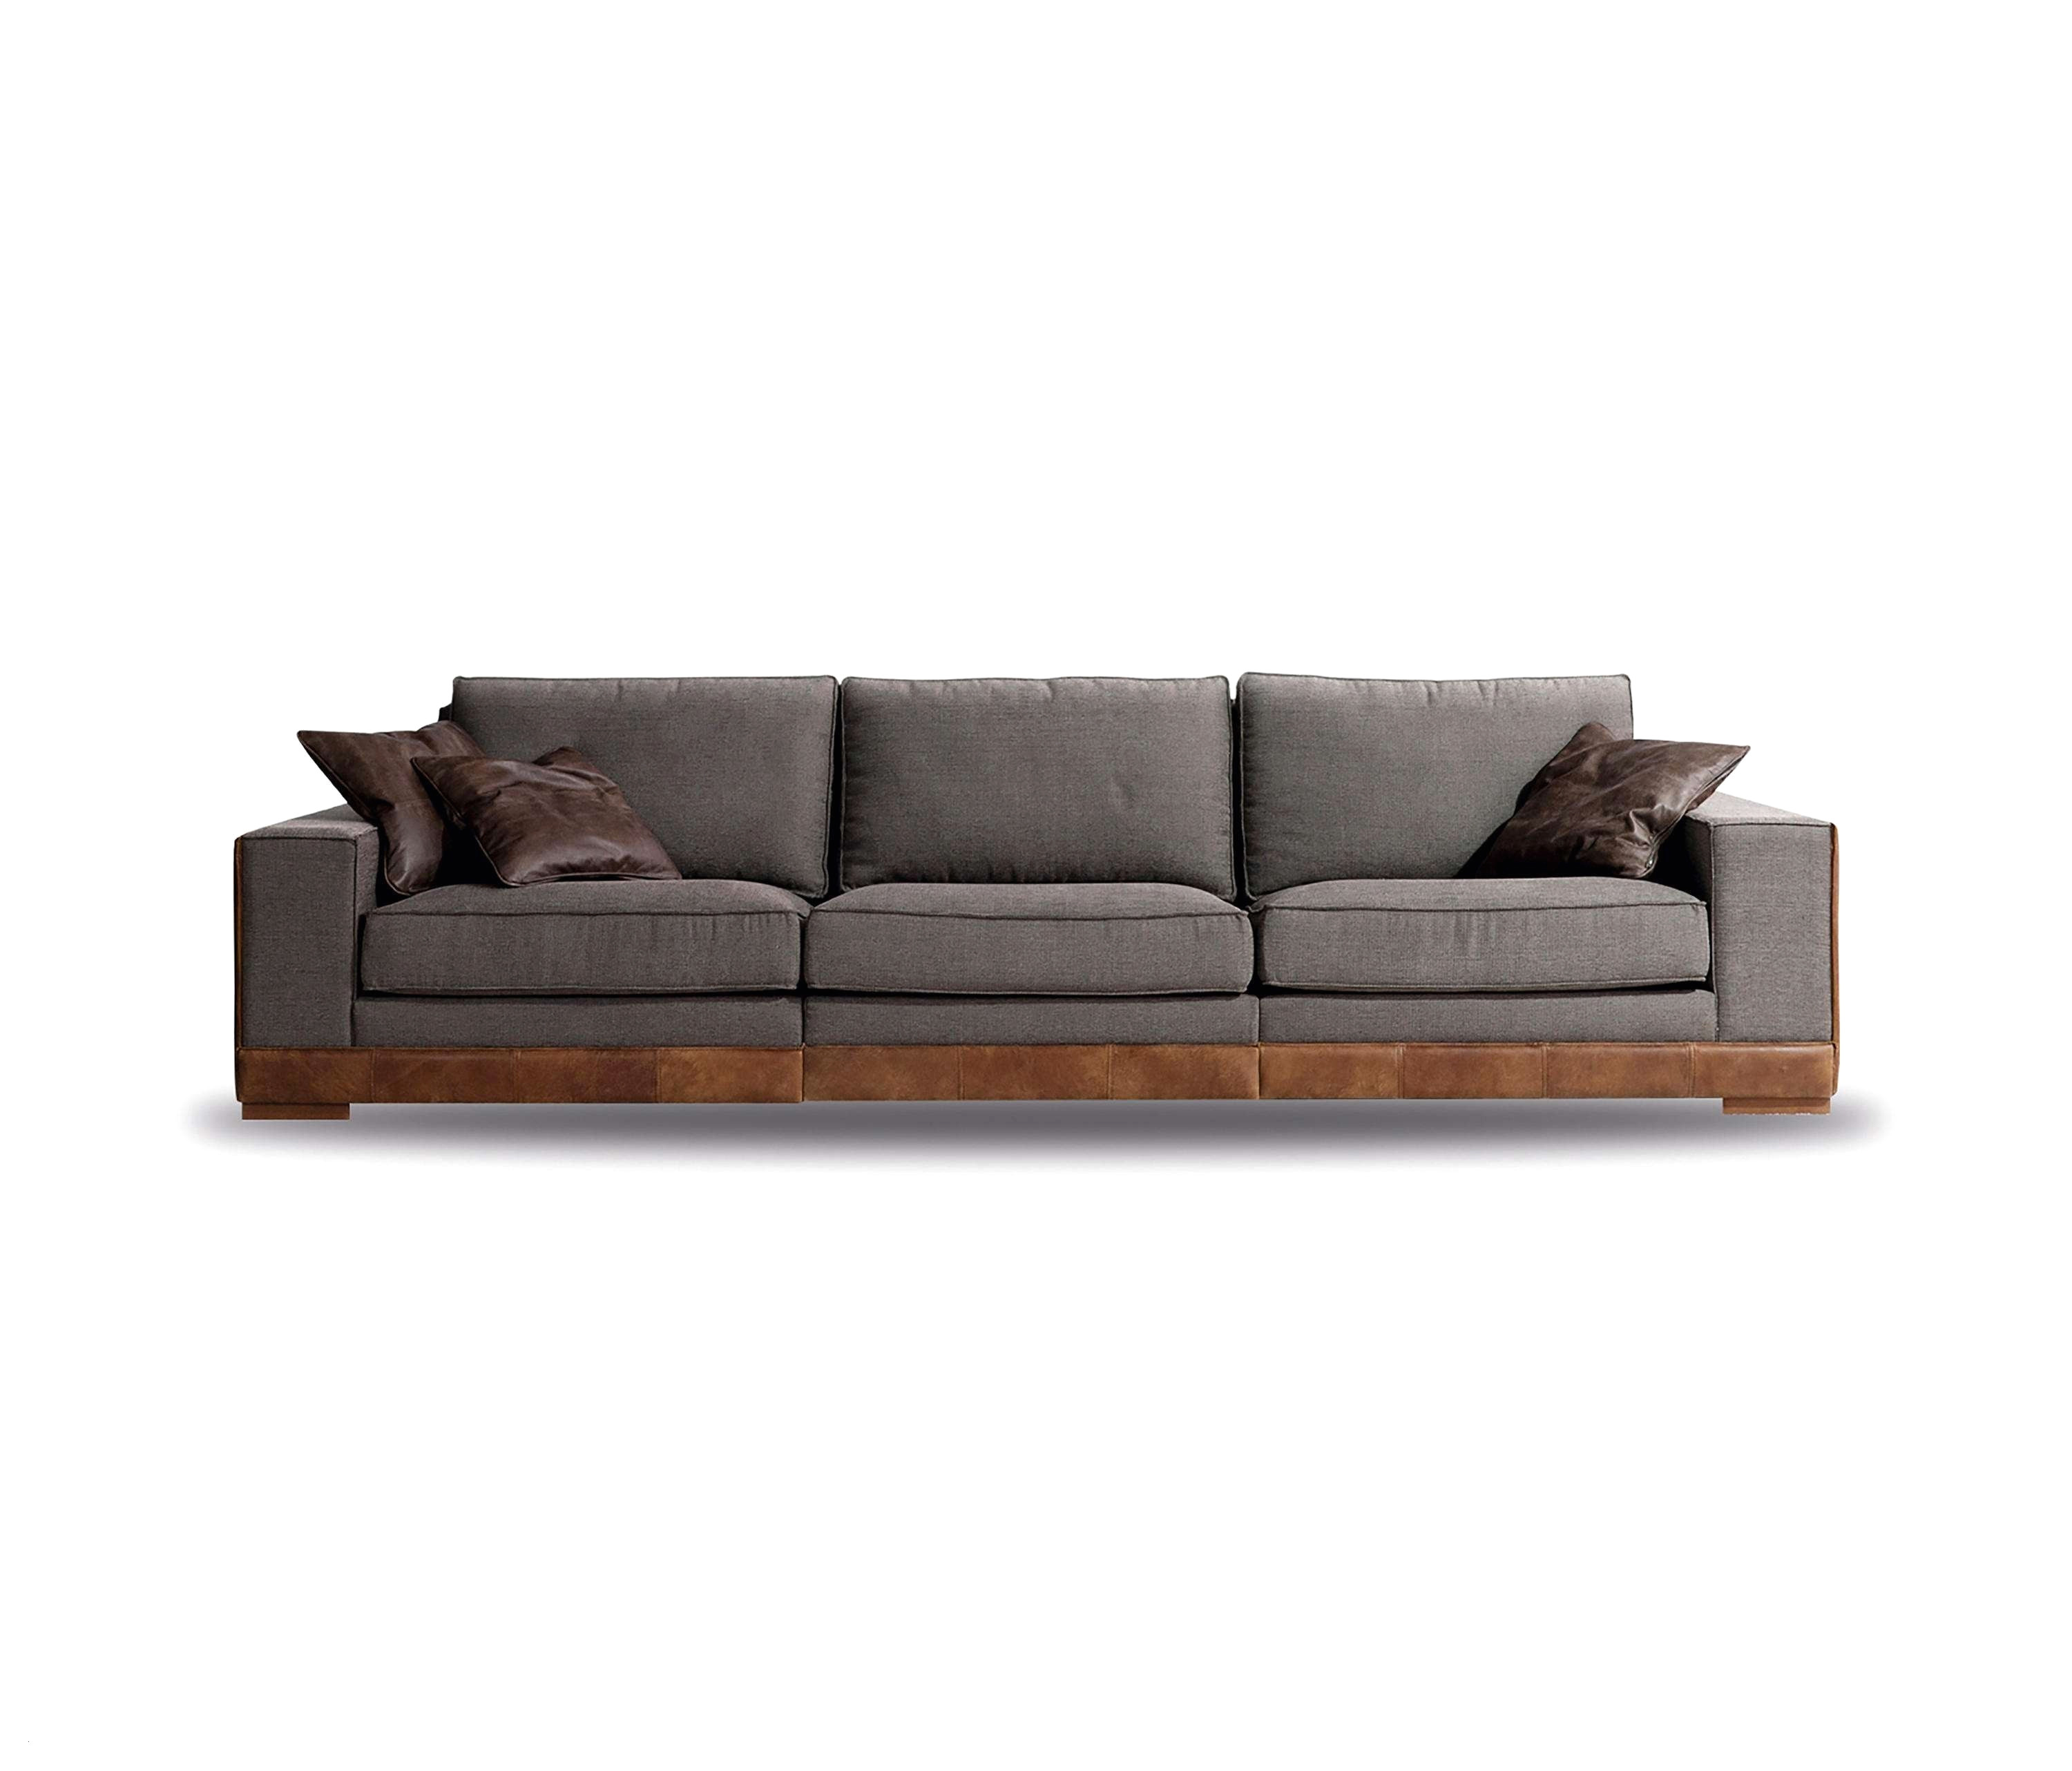 Bettsofa Ikea Neu Solsta Sofa Bed Ikea Review Adinaporter